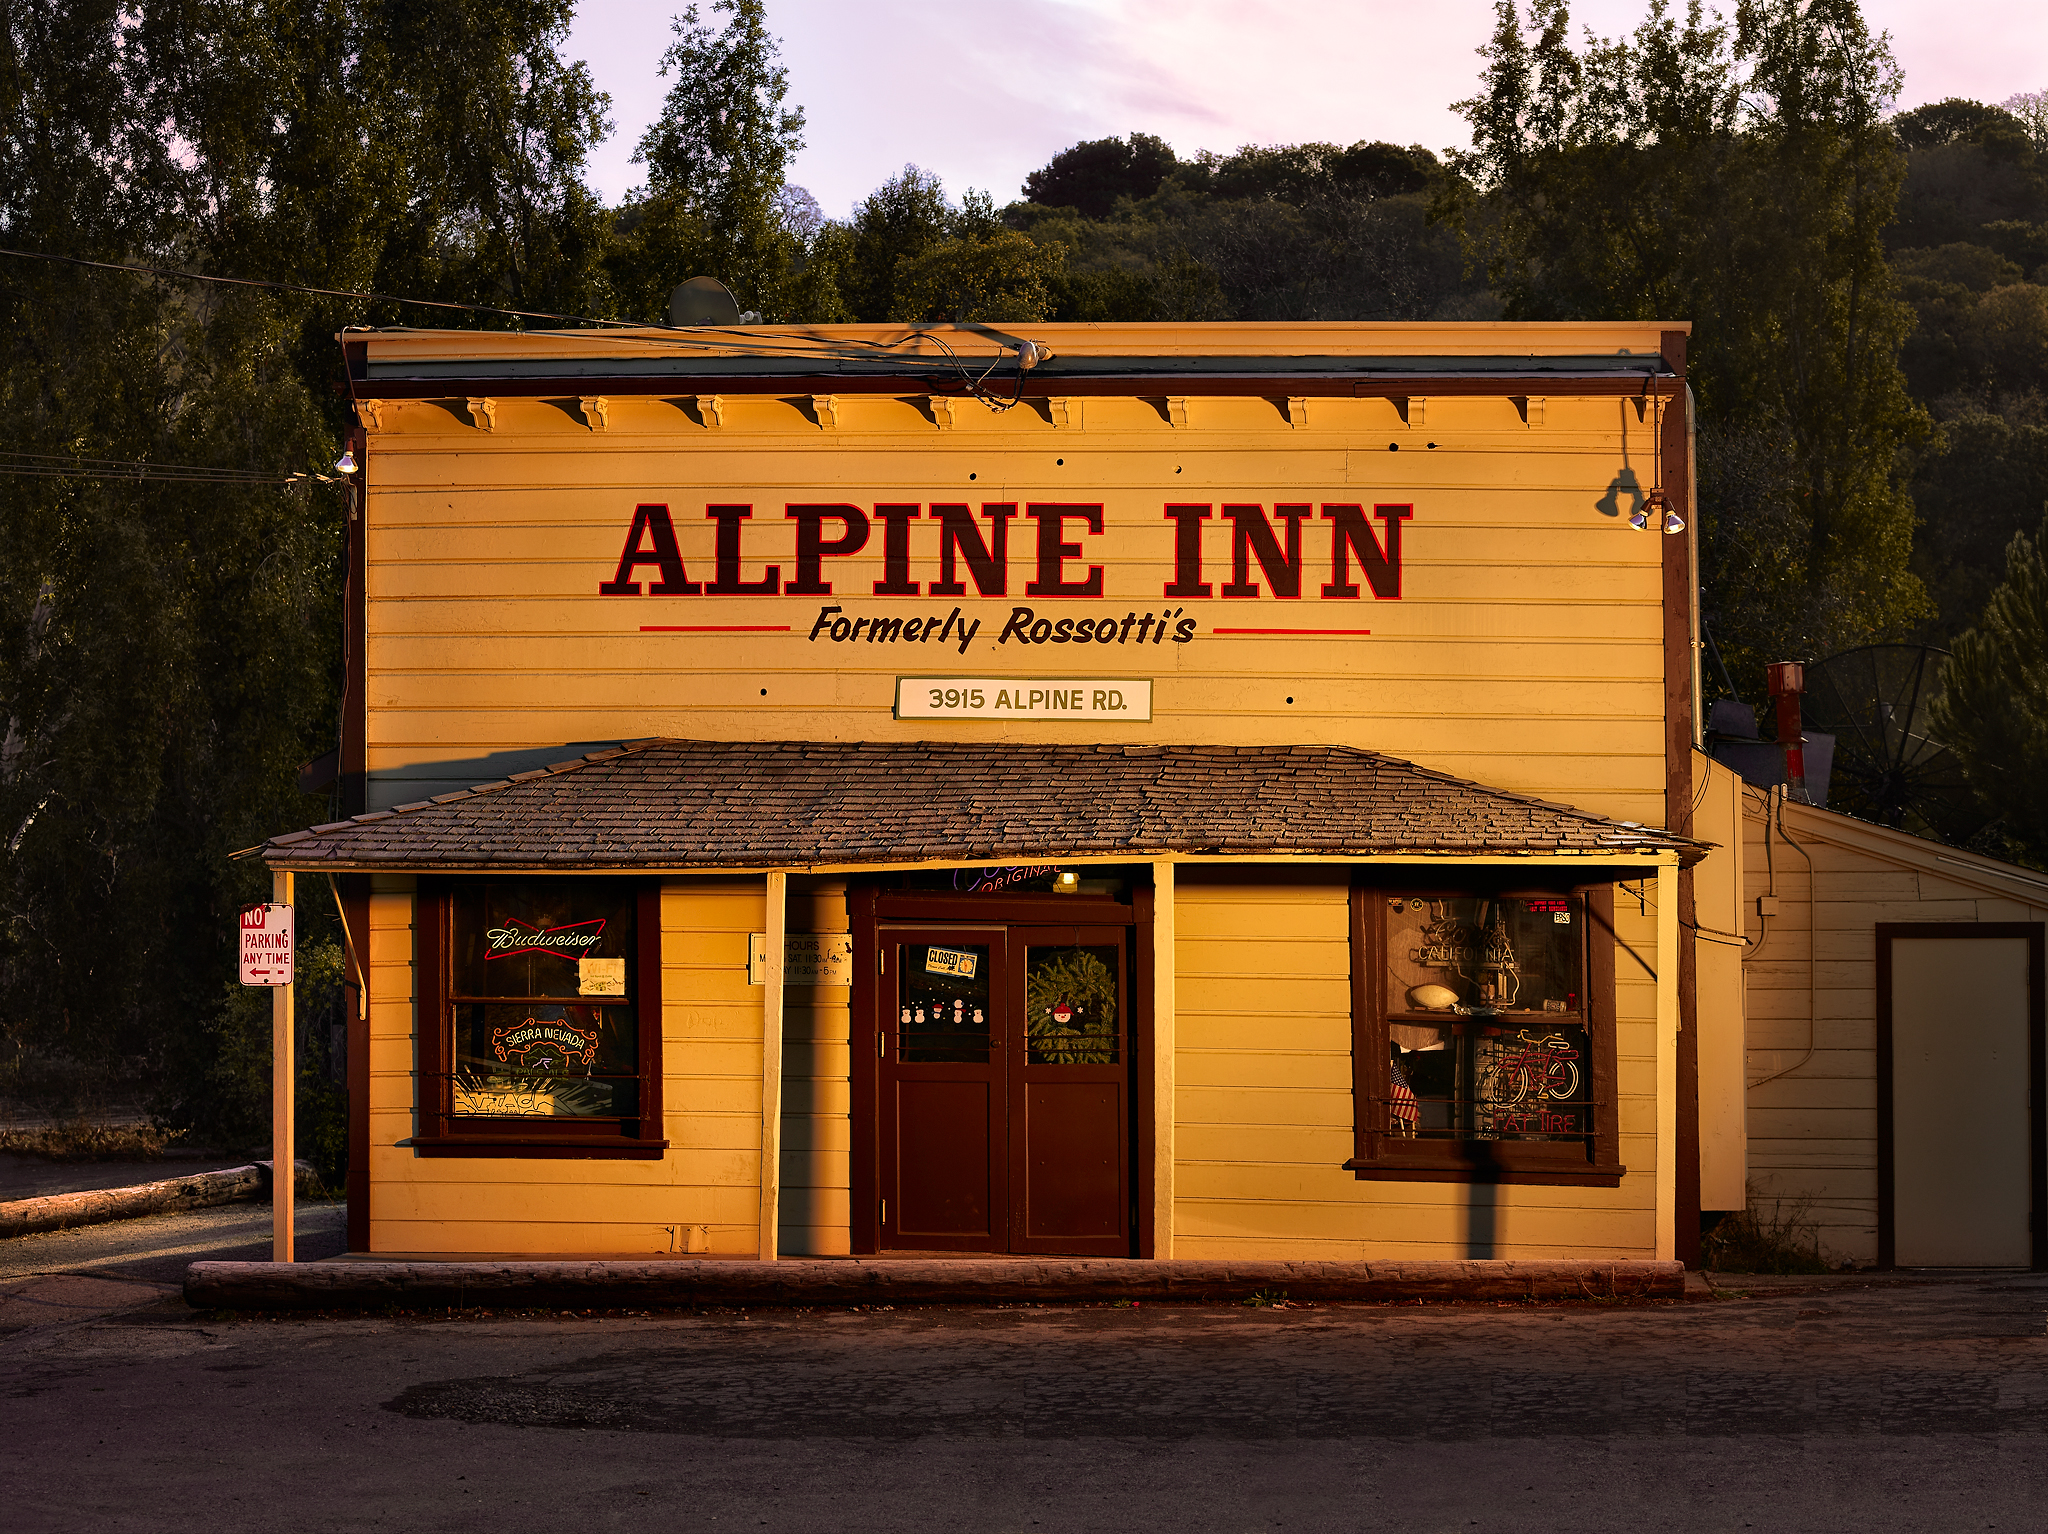 The Alpine Inn by Peter Adams.